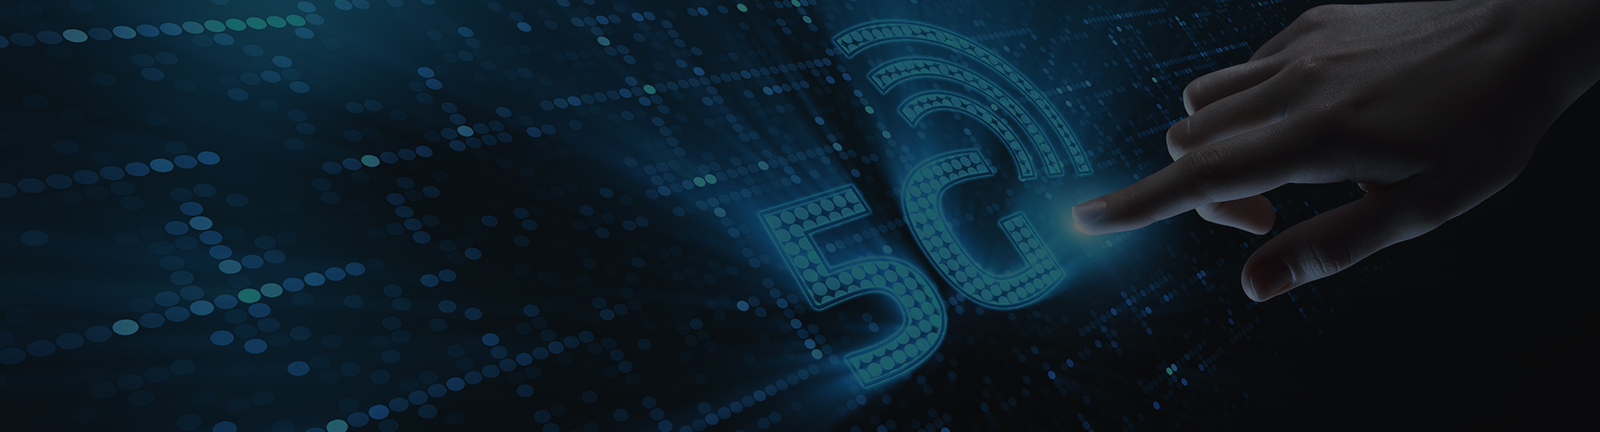 Impact of 5G on the fintech industry